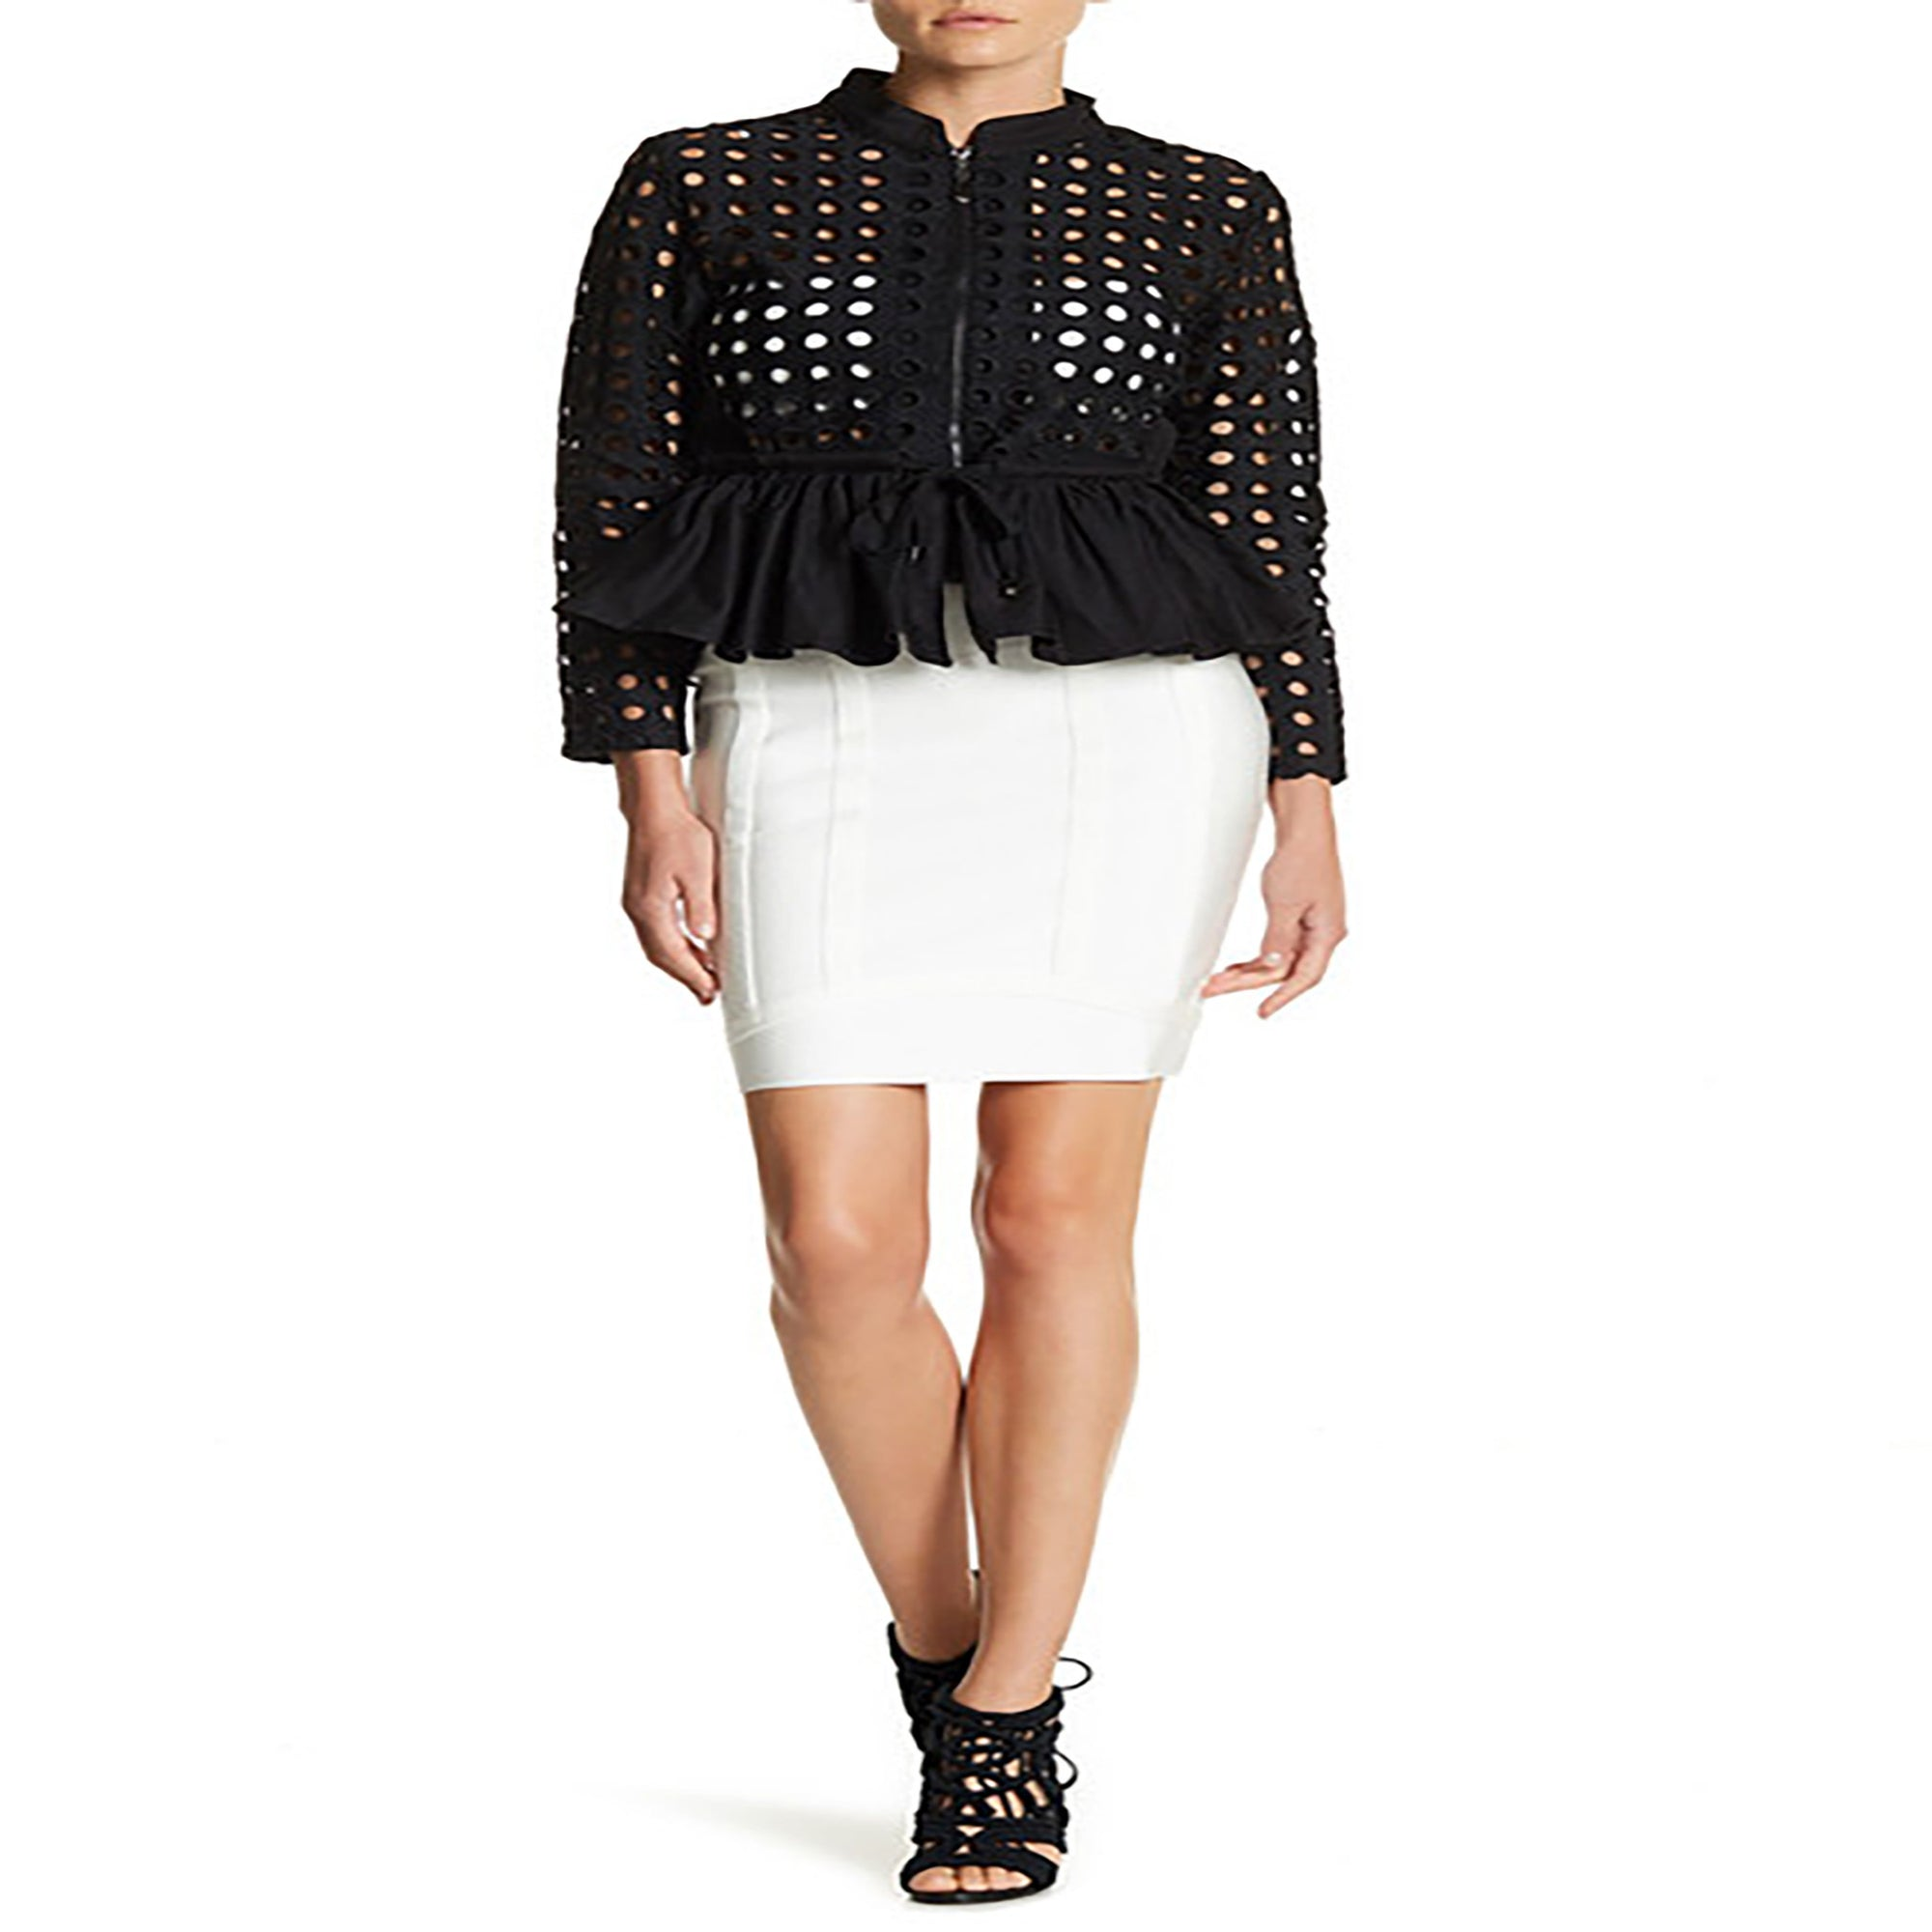 Bandage Mini Skirt - Modern Seasonless Skirt